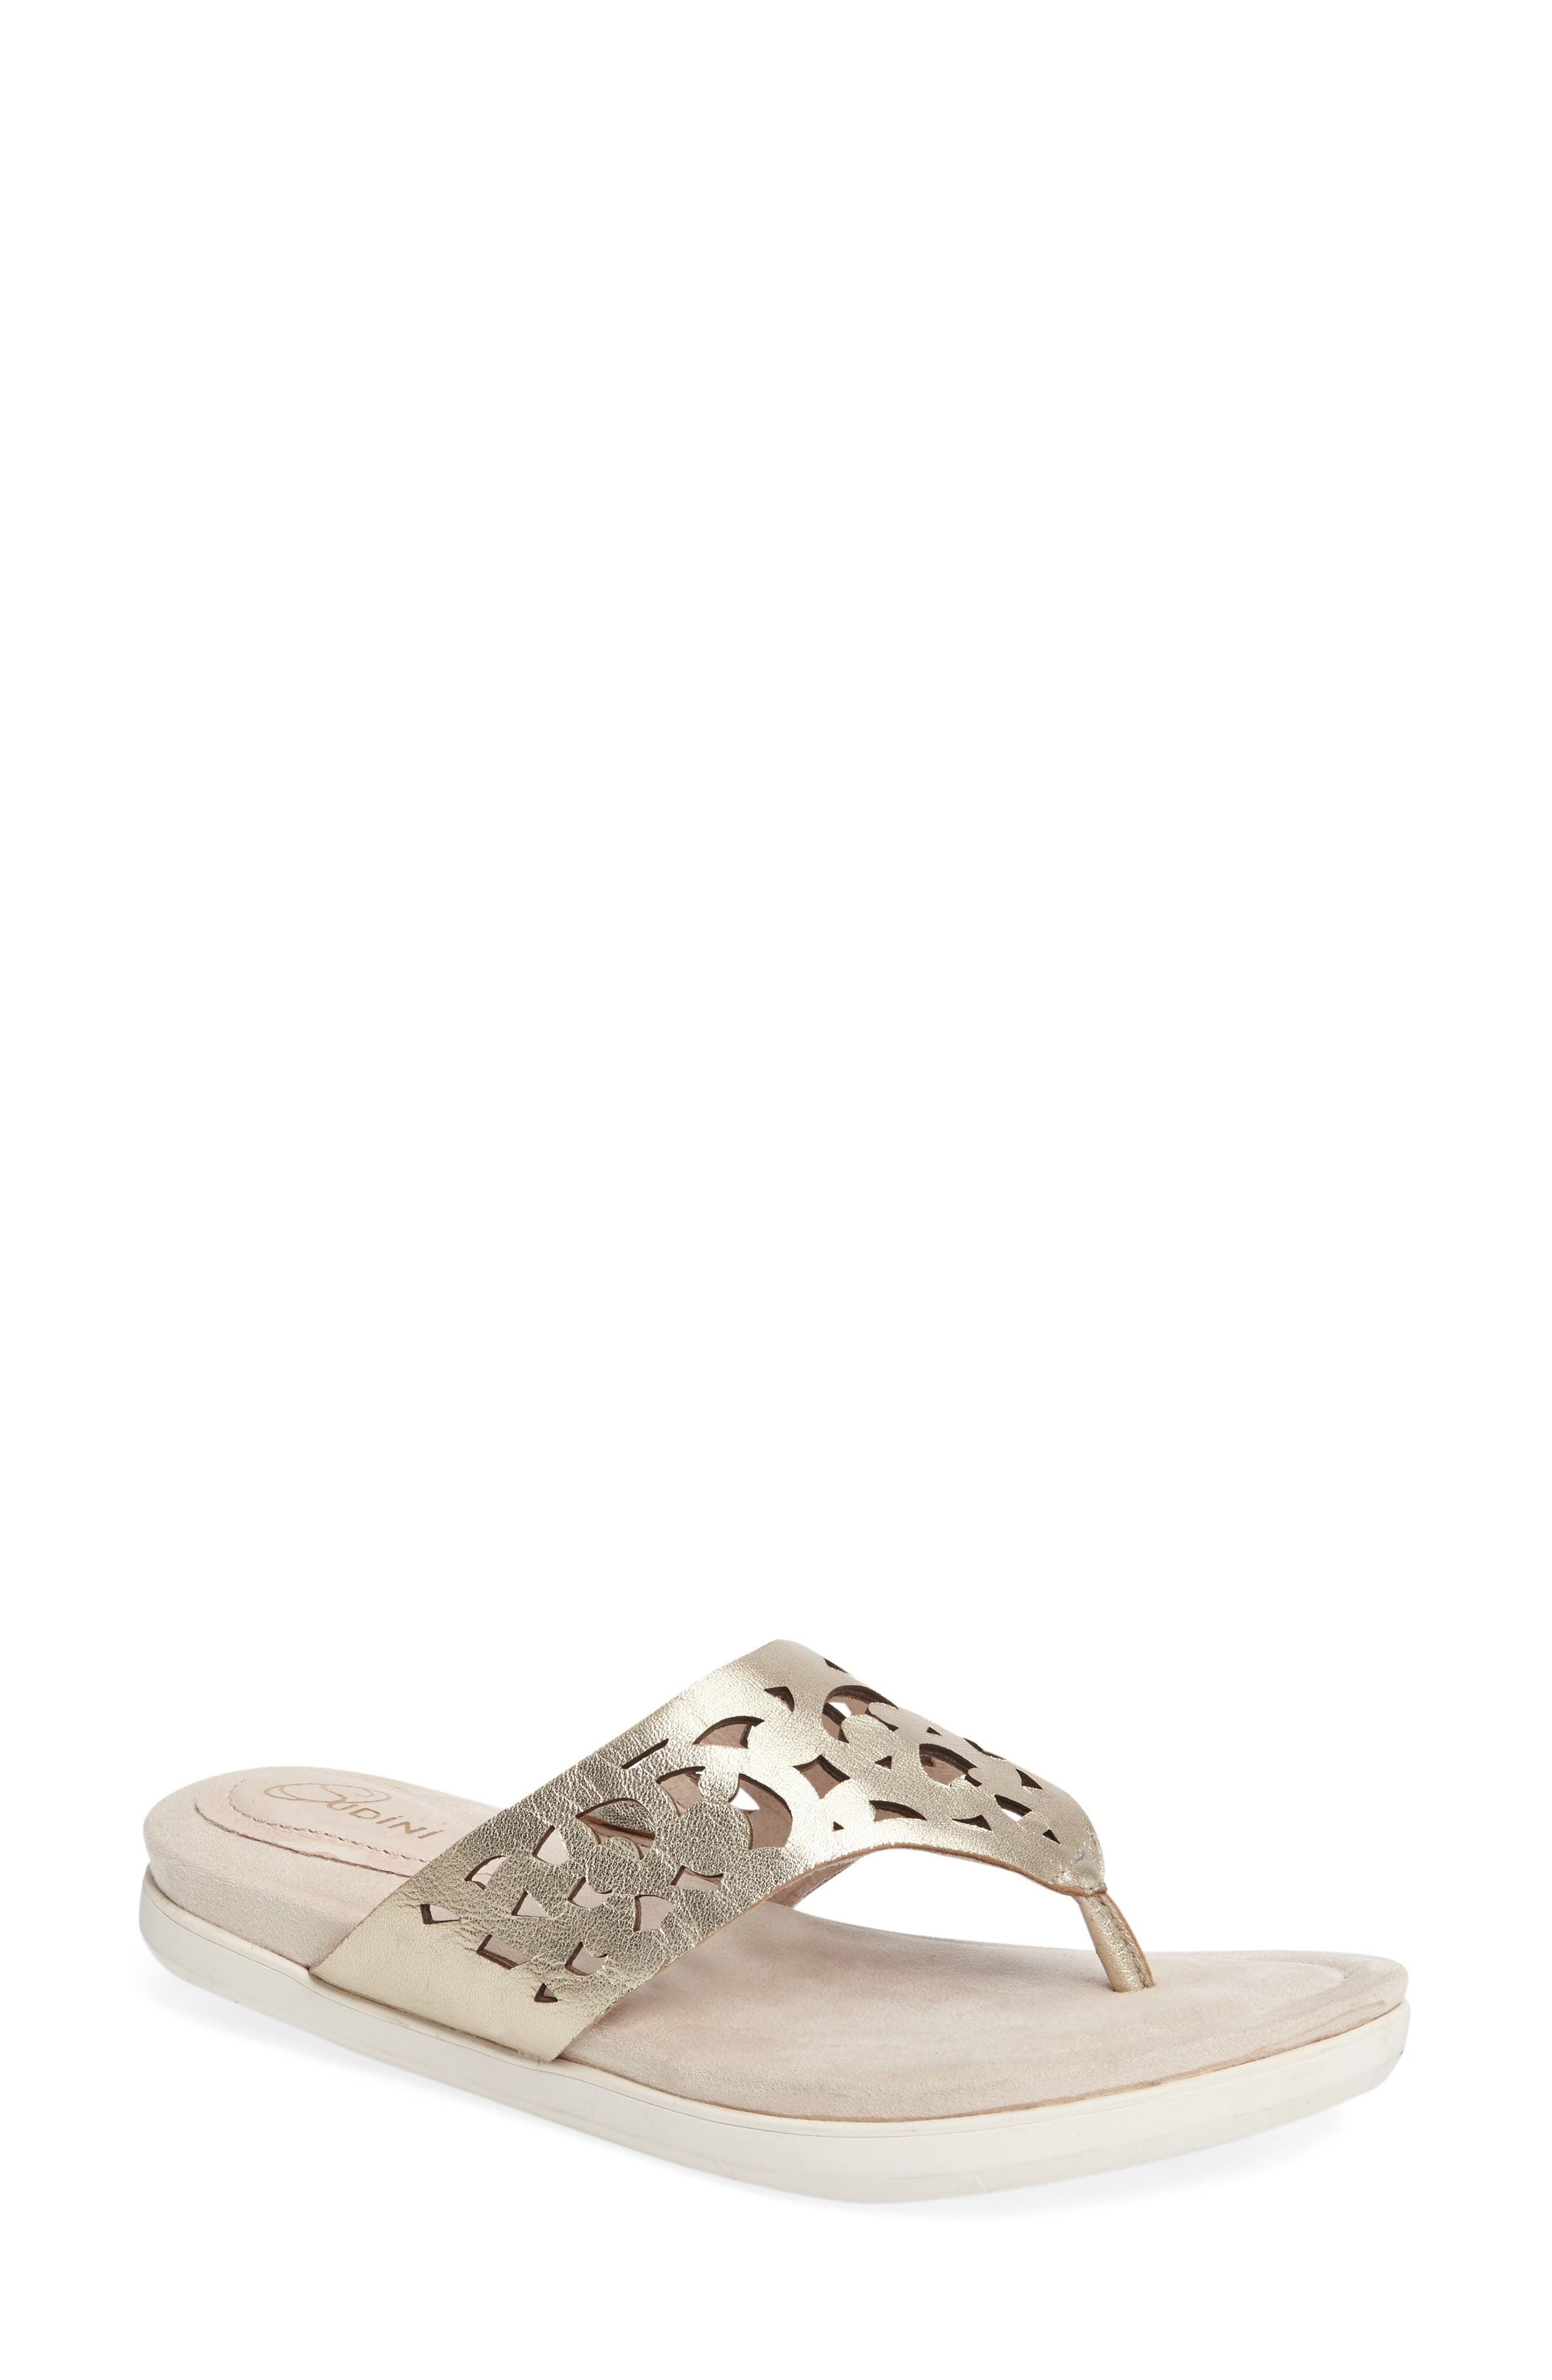 Sudini Sally Perforated Flip Flop (Women)